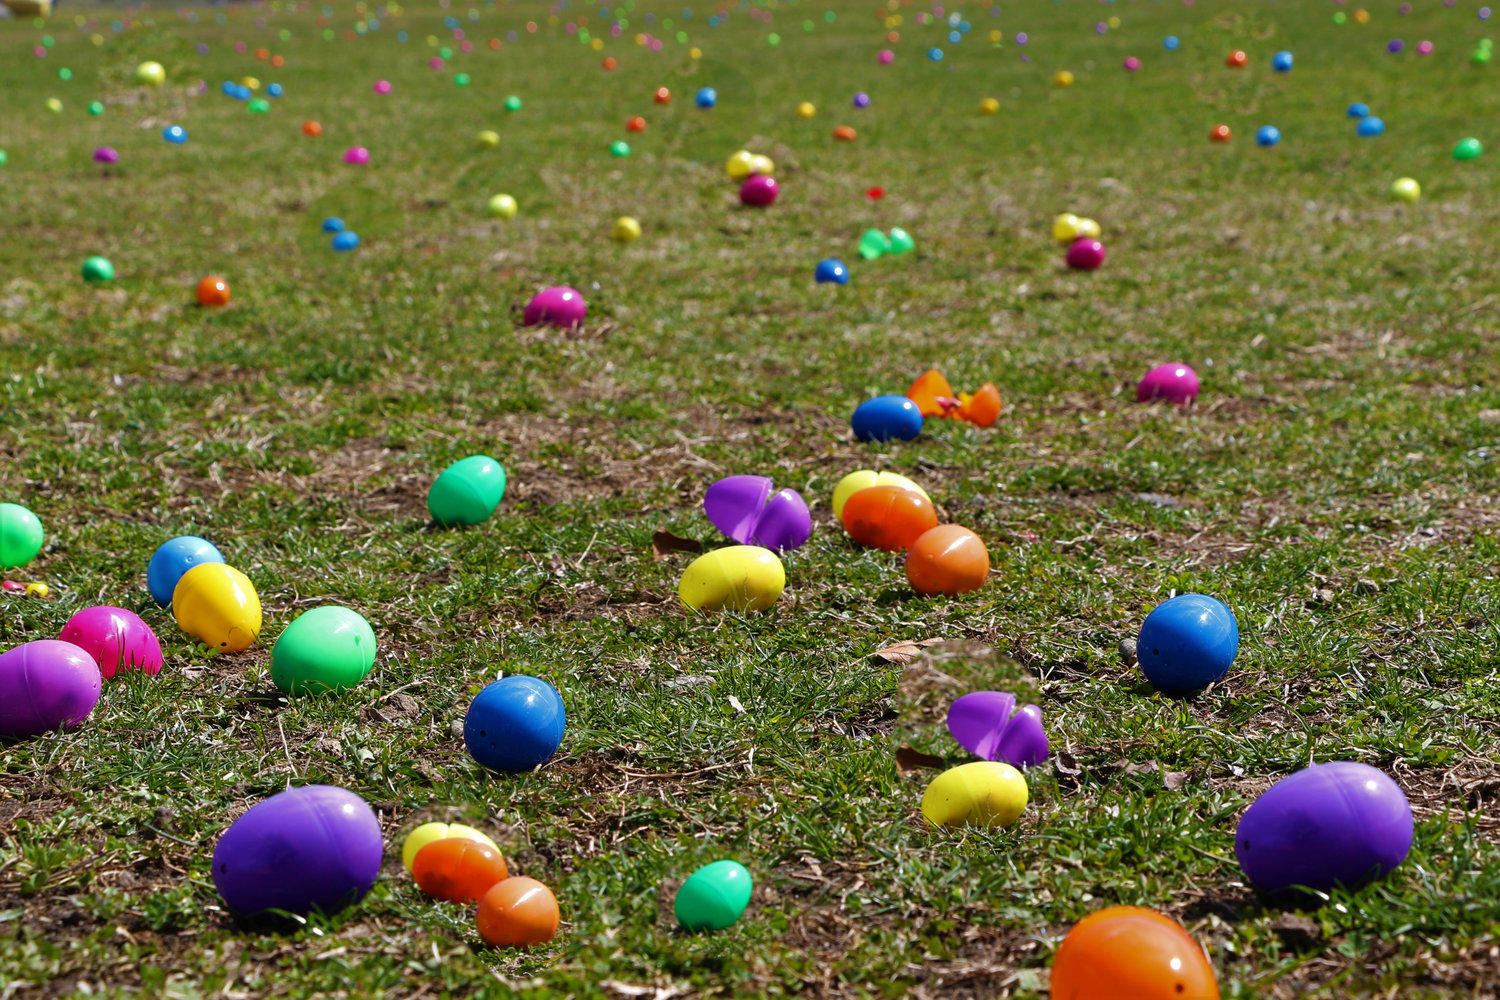 The Easter eggs were spread out for children to collect.